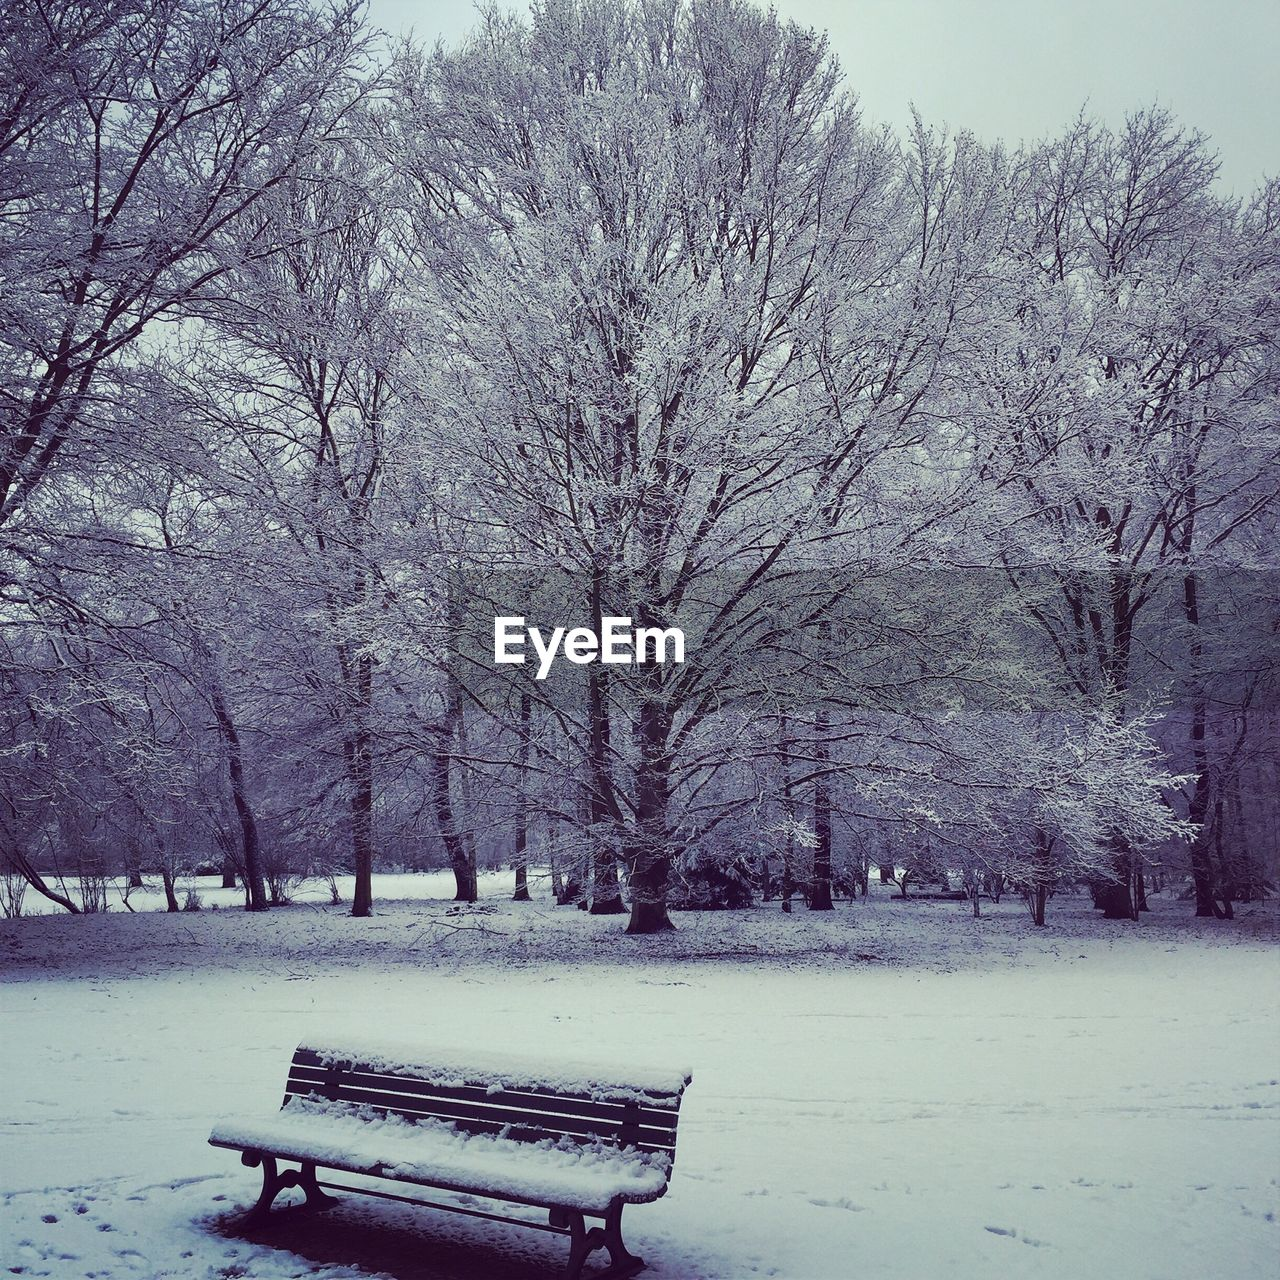 winter, snow, cold temperature, nature, bare tree, tree, beauty in nature, weather, tranquility, park - man made space, landscape, branch, outdoors, no people, day, scenics, sky, bleak